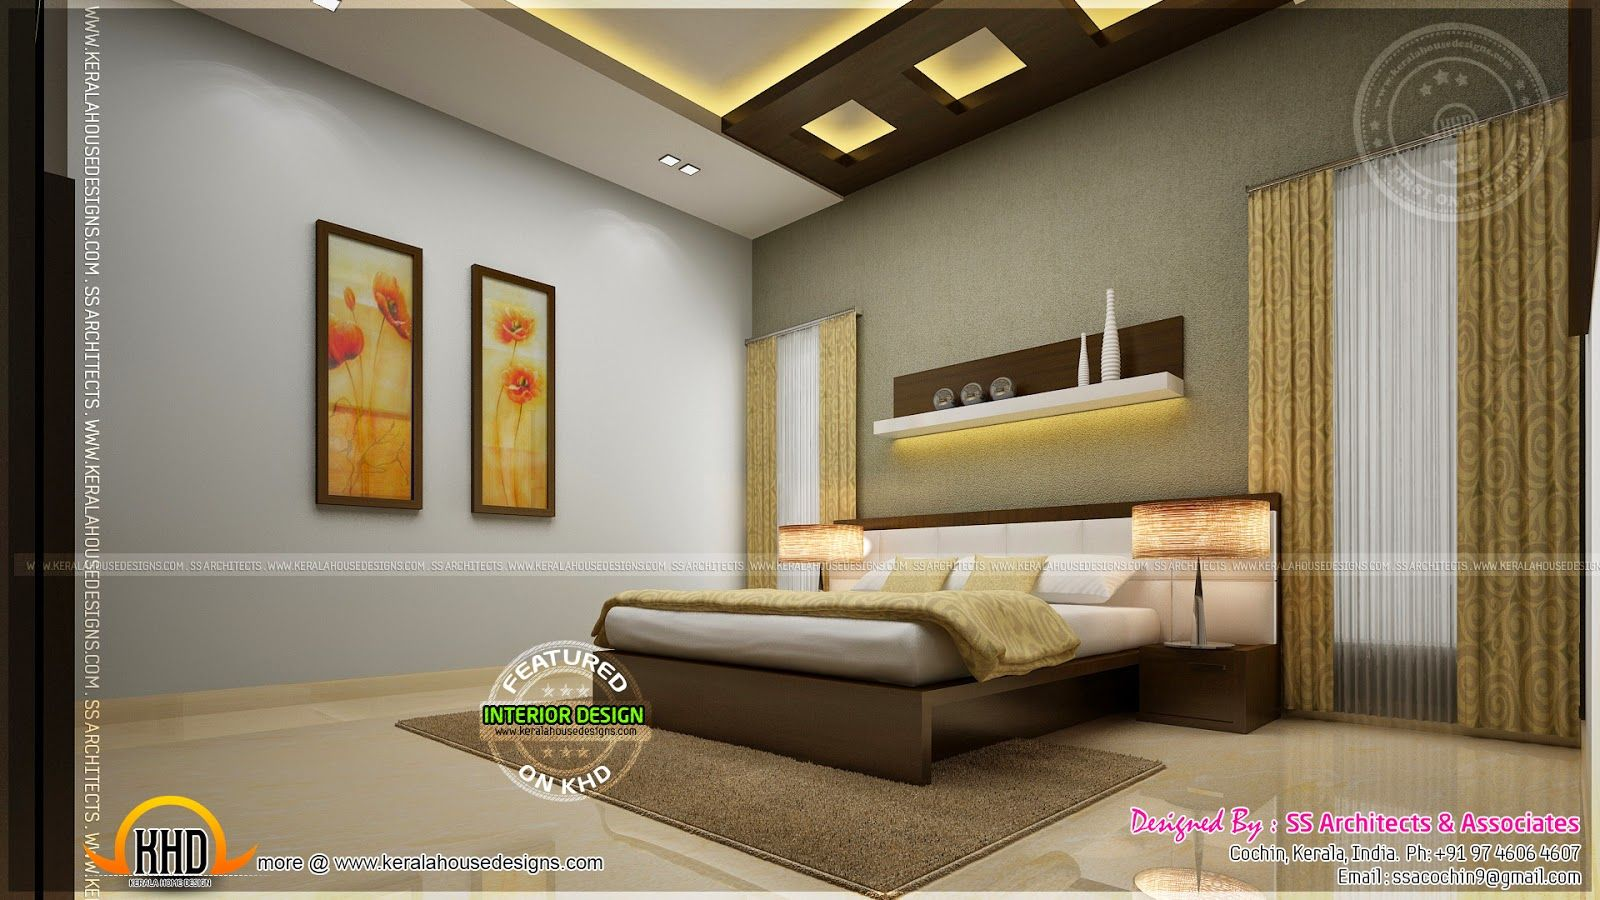 Indian master bedroom interior design google search for Bedroom interior design india